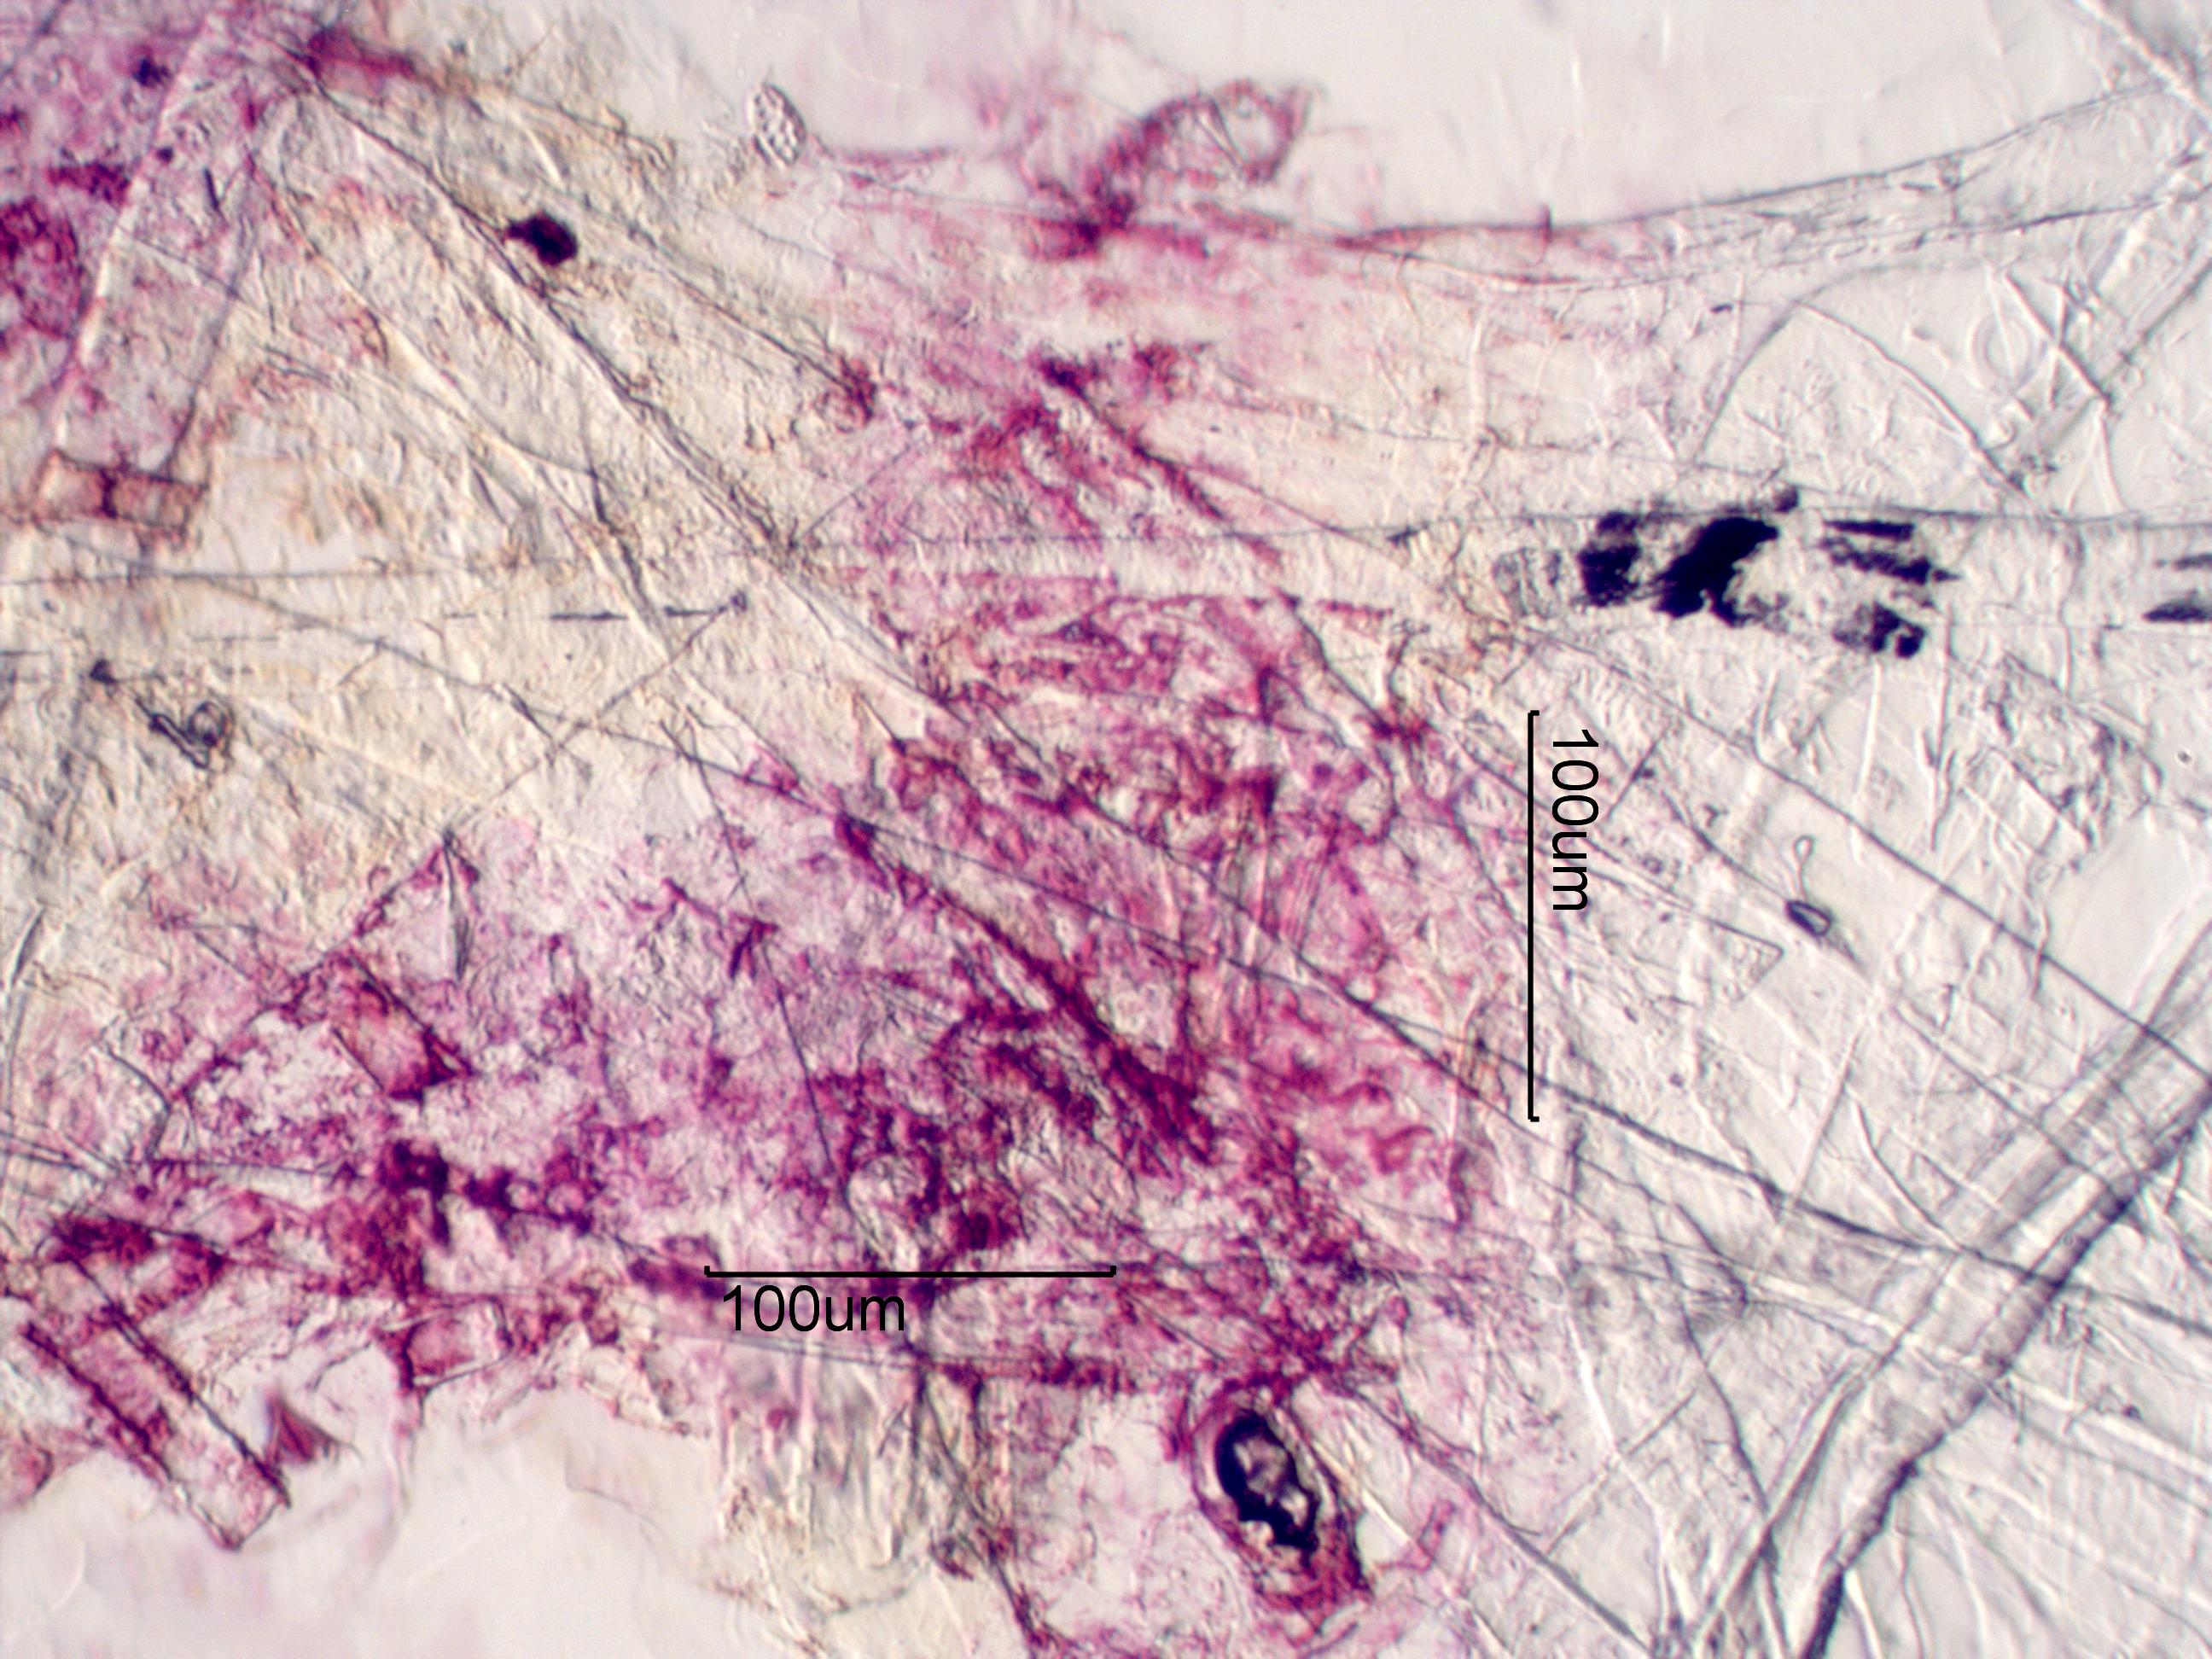 Newspaper Ink And Fiber Under The Microscope